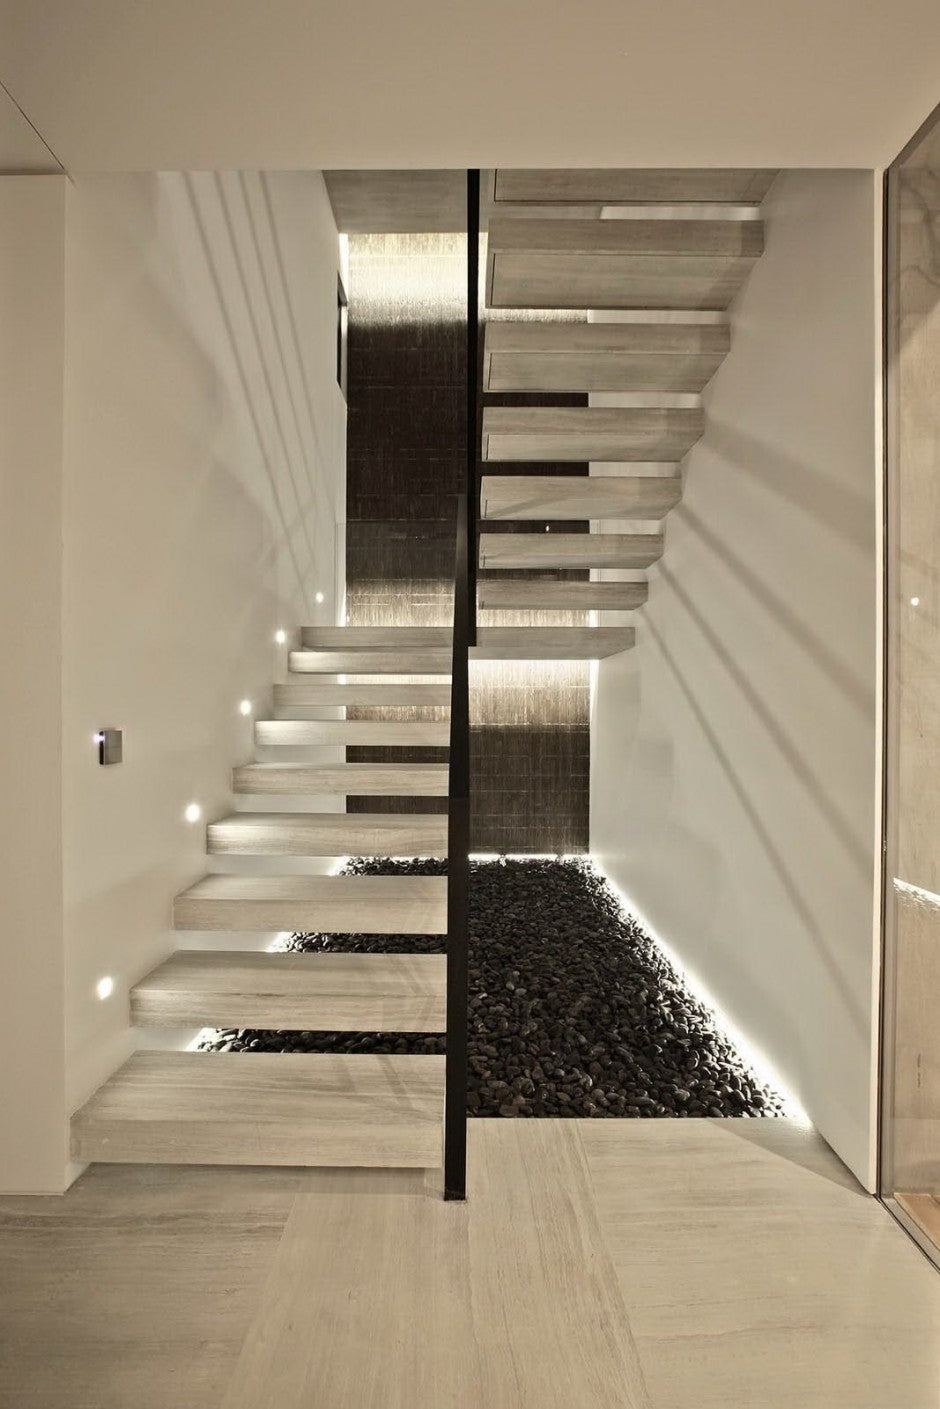 On the wall run from ceiling to floor as well as the stones or pebbles underneath the staircase add a zen like and very modern appeal to the house